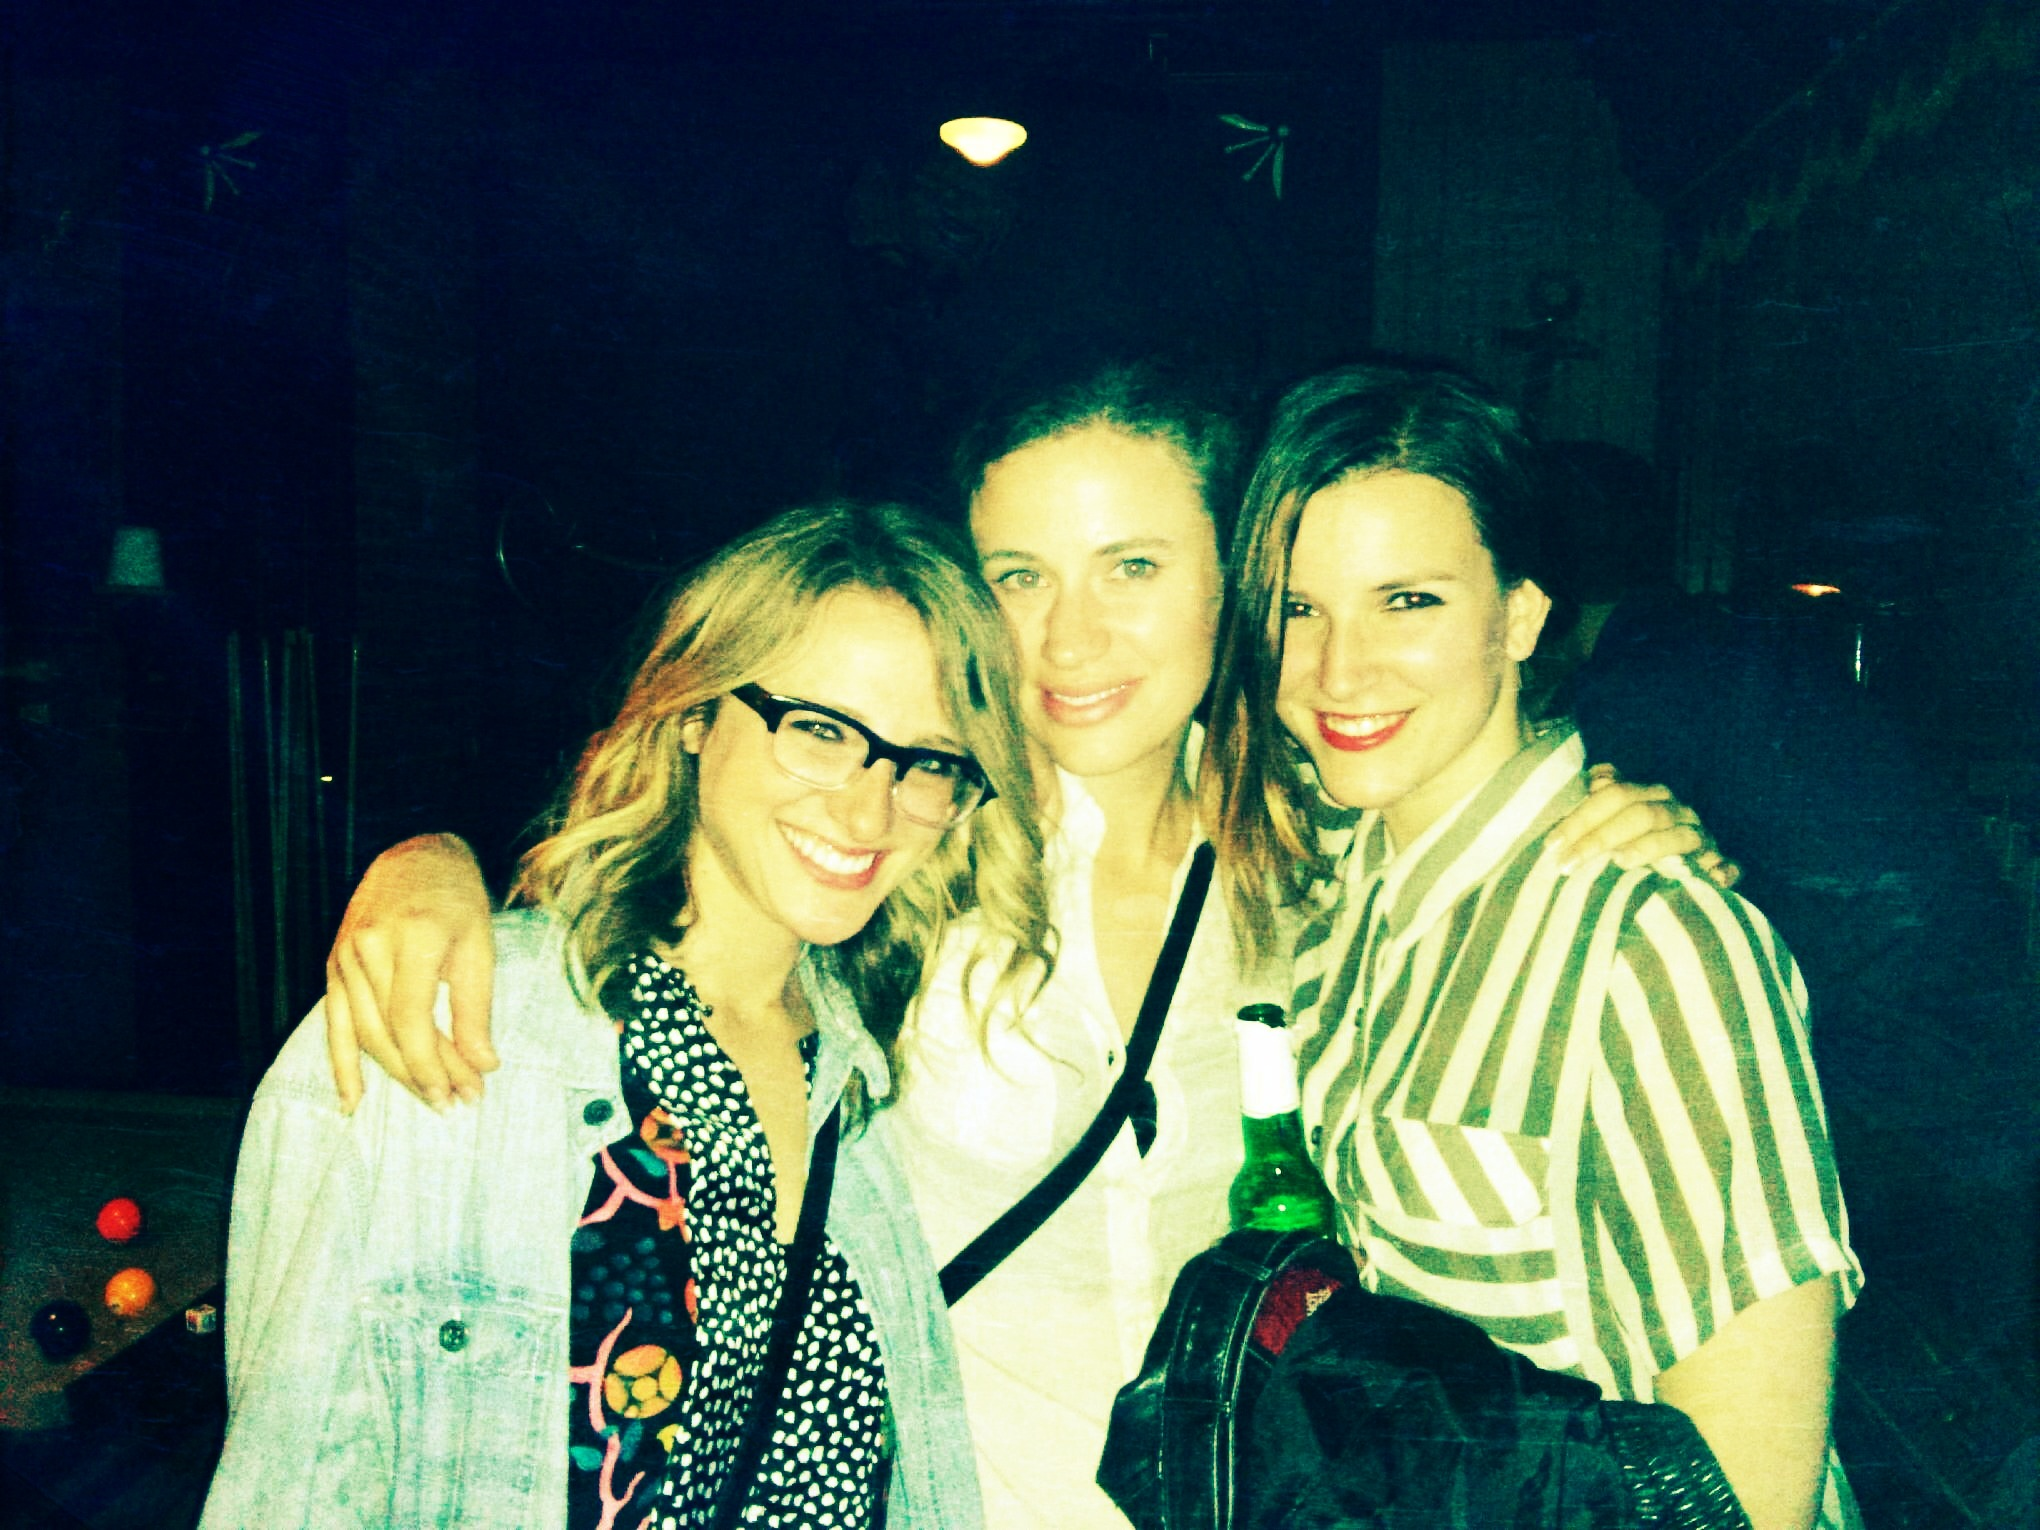 Lurdies night with my gals Sarah & Courtney.